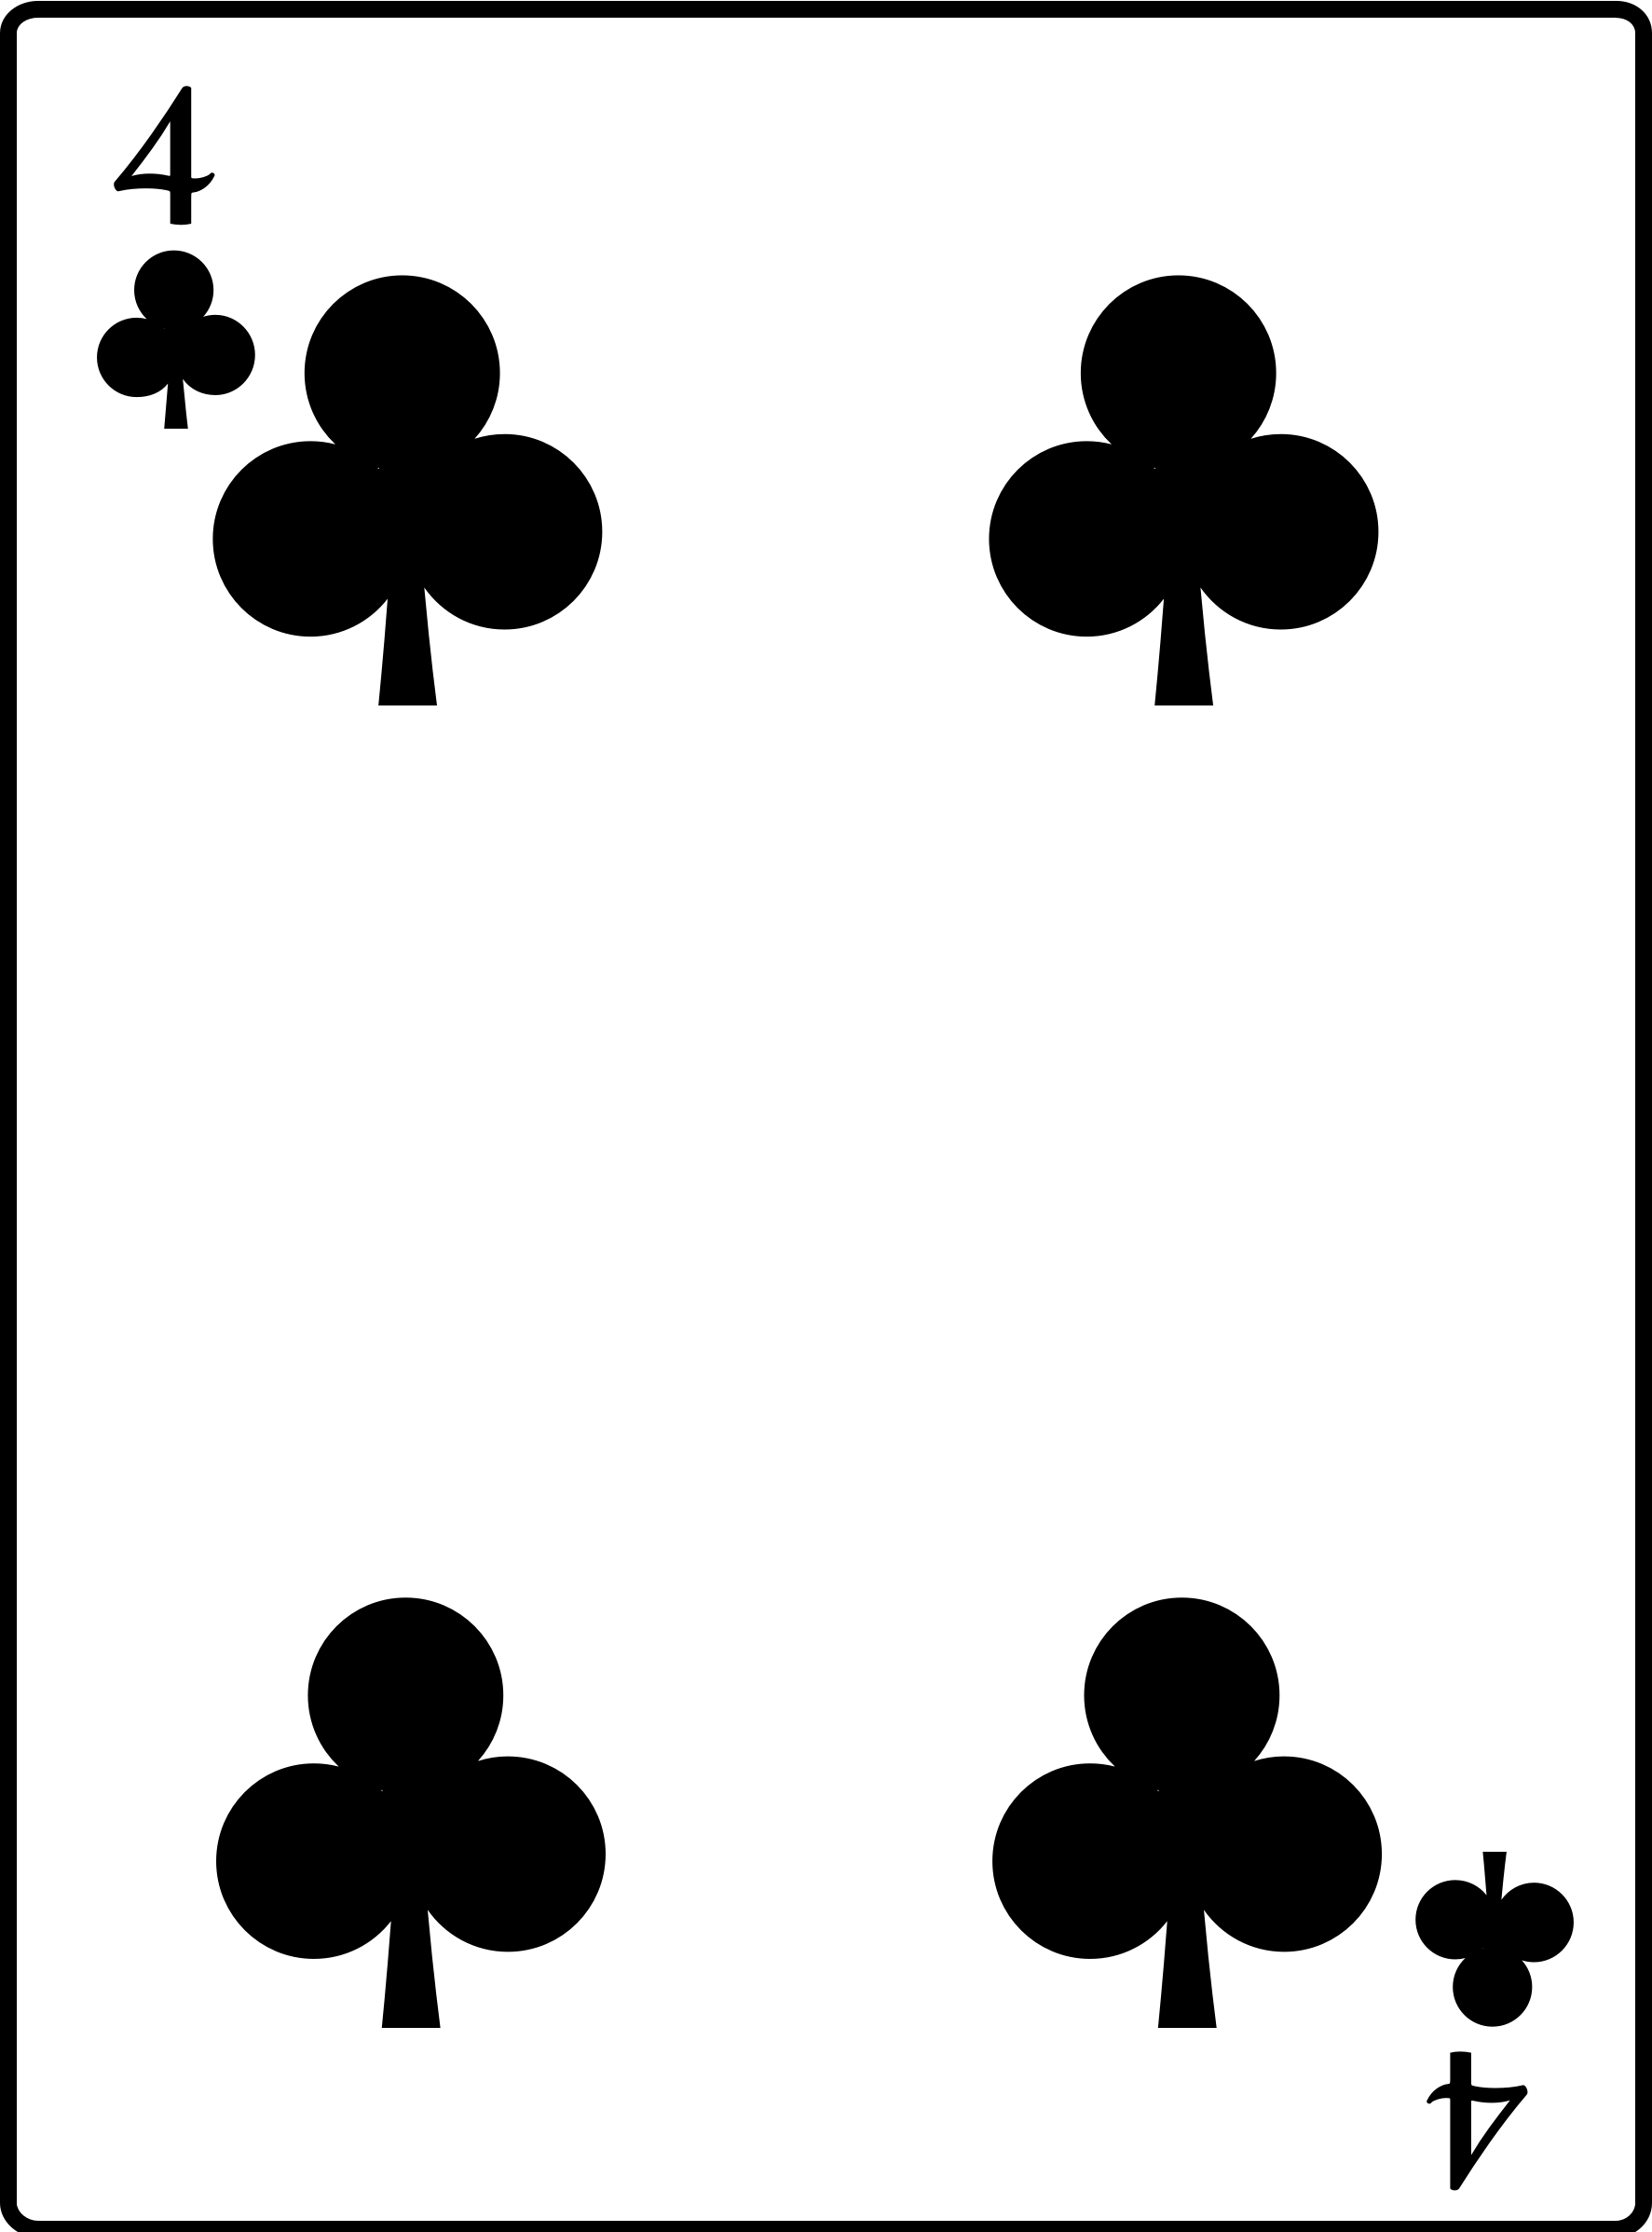 4 of Clubs by casino